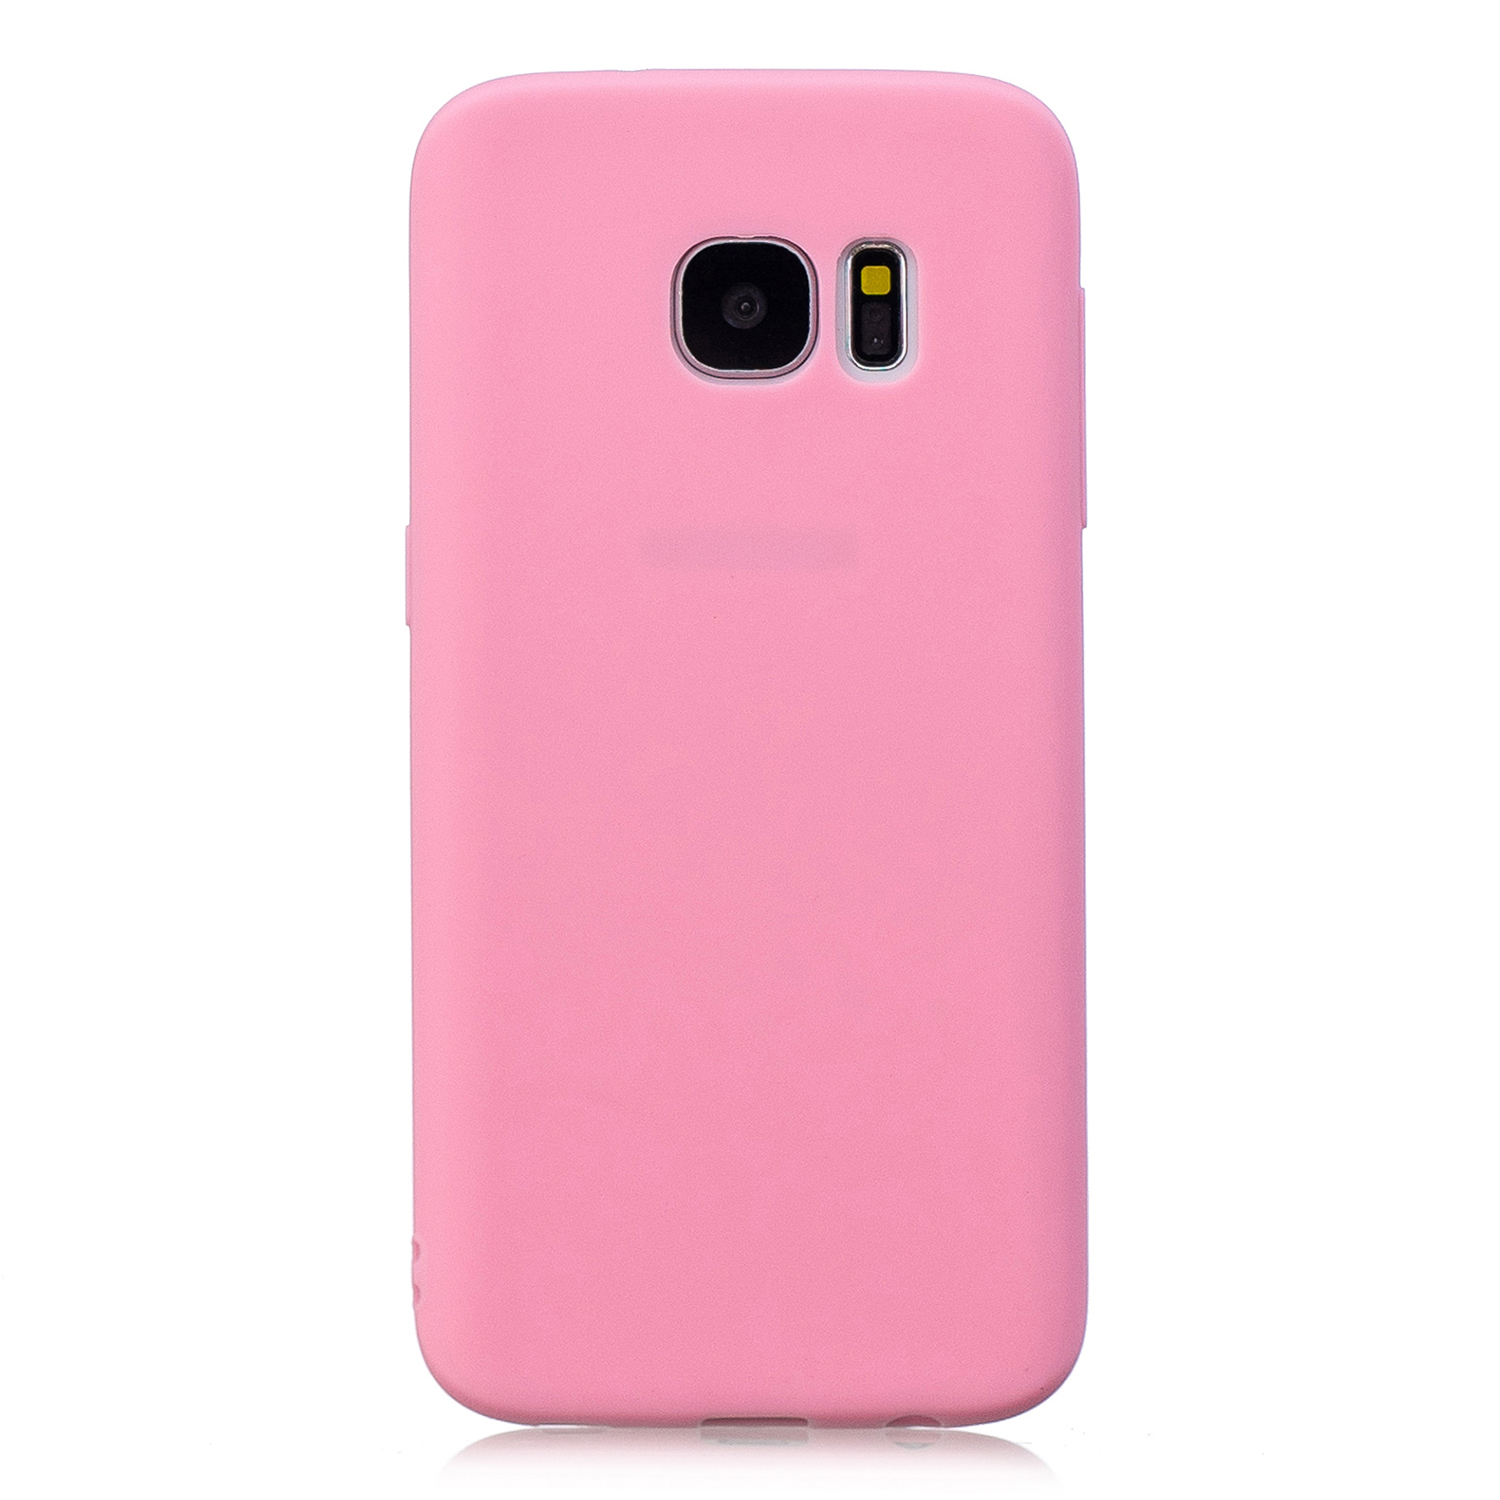 for Samsung S7 edge Cute Candy Color Matte TPU Anti-scratch Non-slip Protective Cover Back Case dark pink